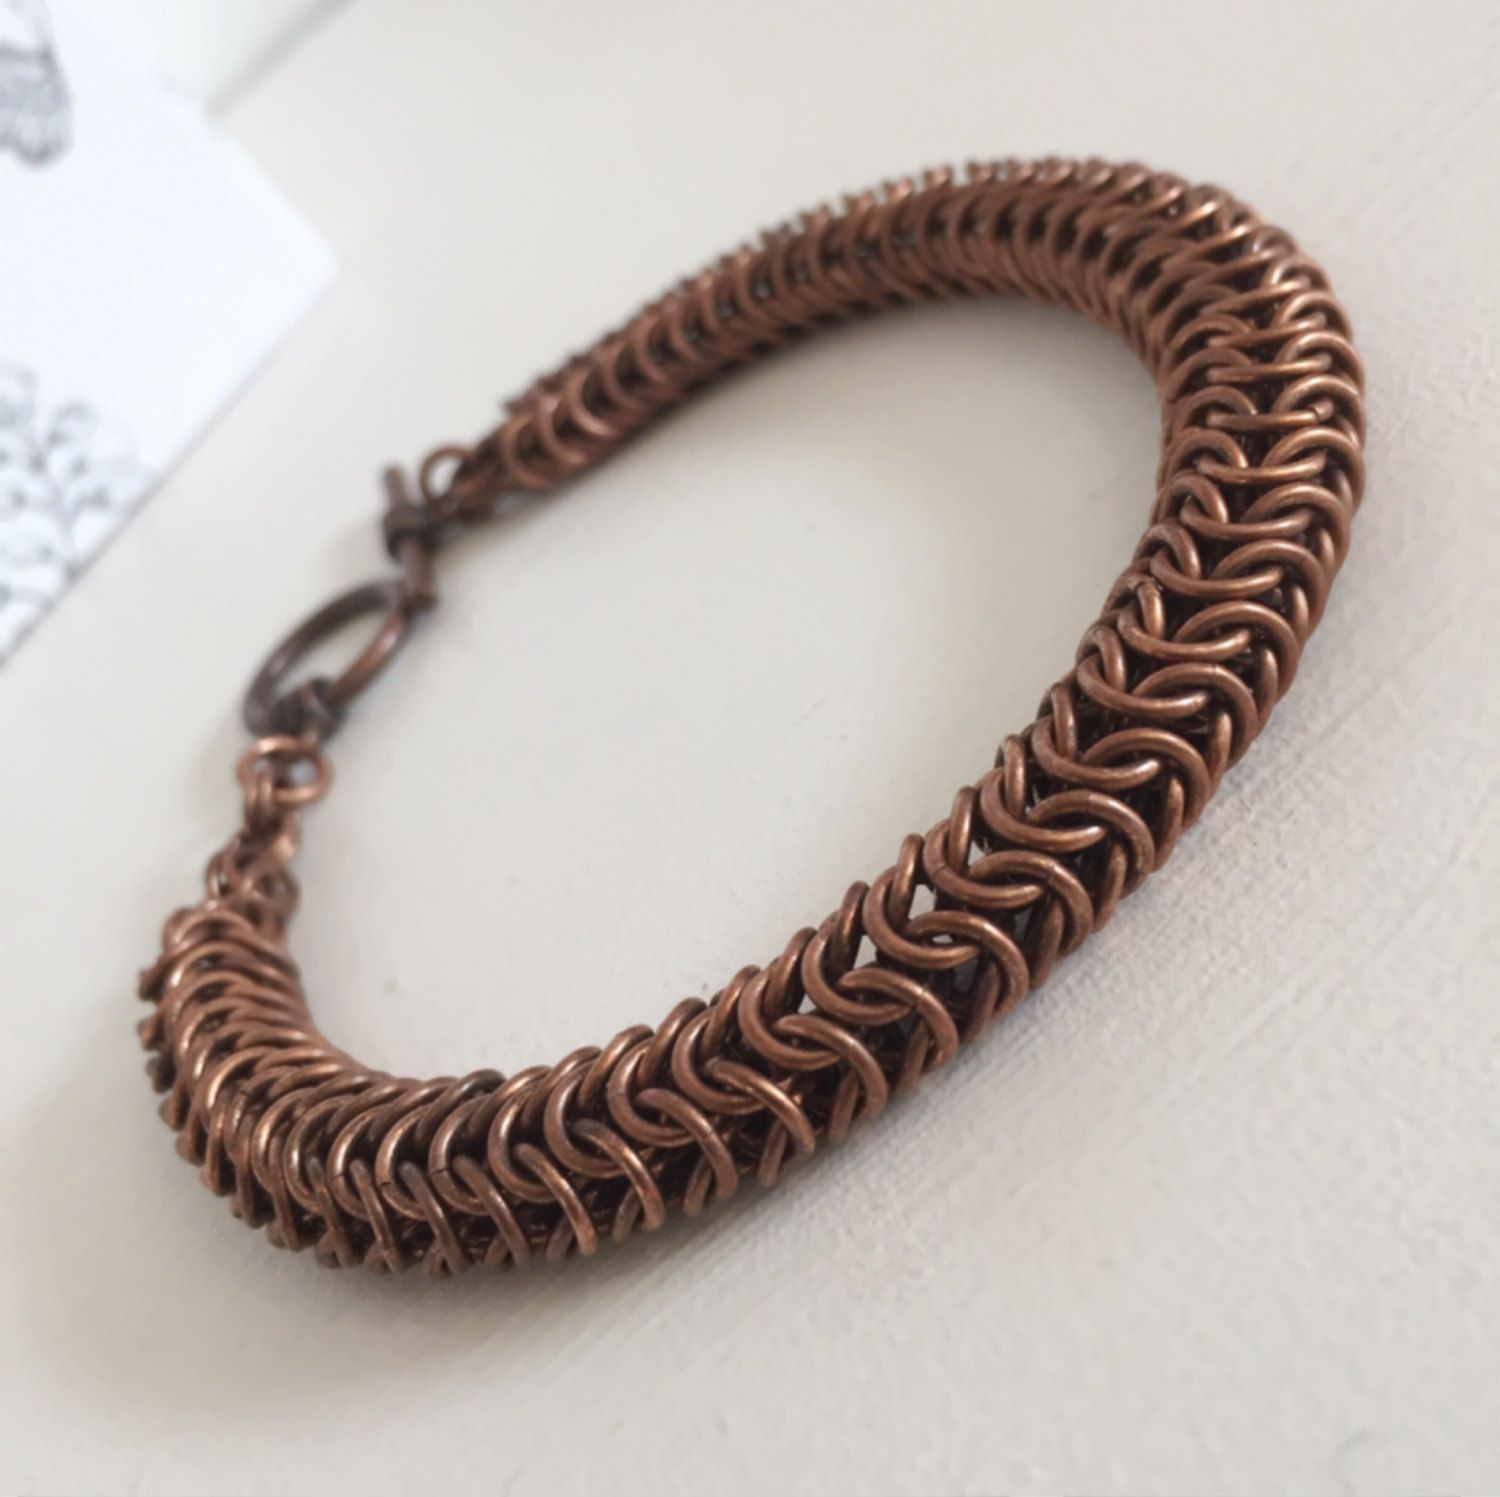 Copper Bracelet Roundmail, Copper Jewelry Bracelet Gift, Antique Copper  Chain Maille Jewelry, Unisex Bracelet Gift For A Special Person